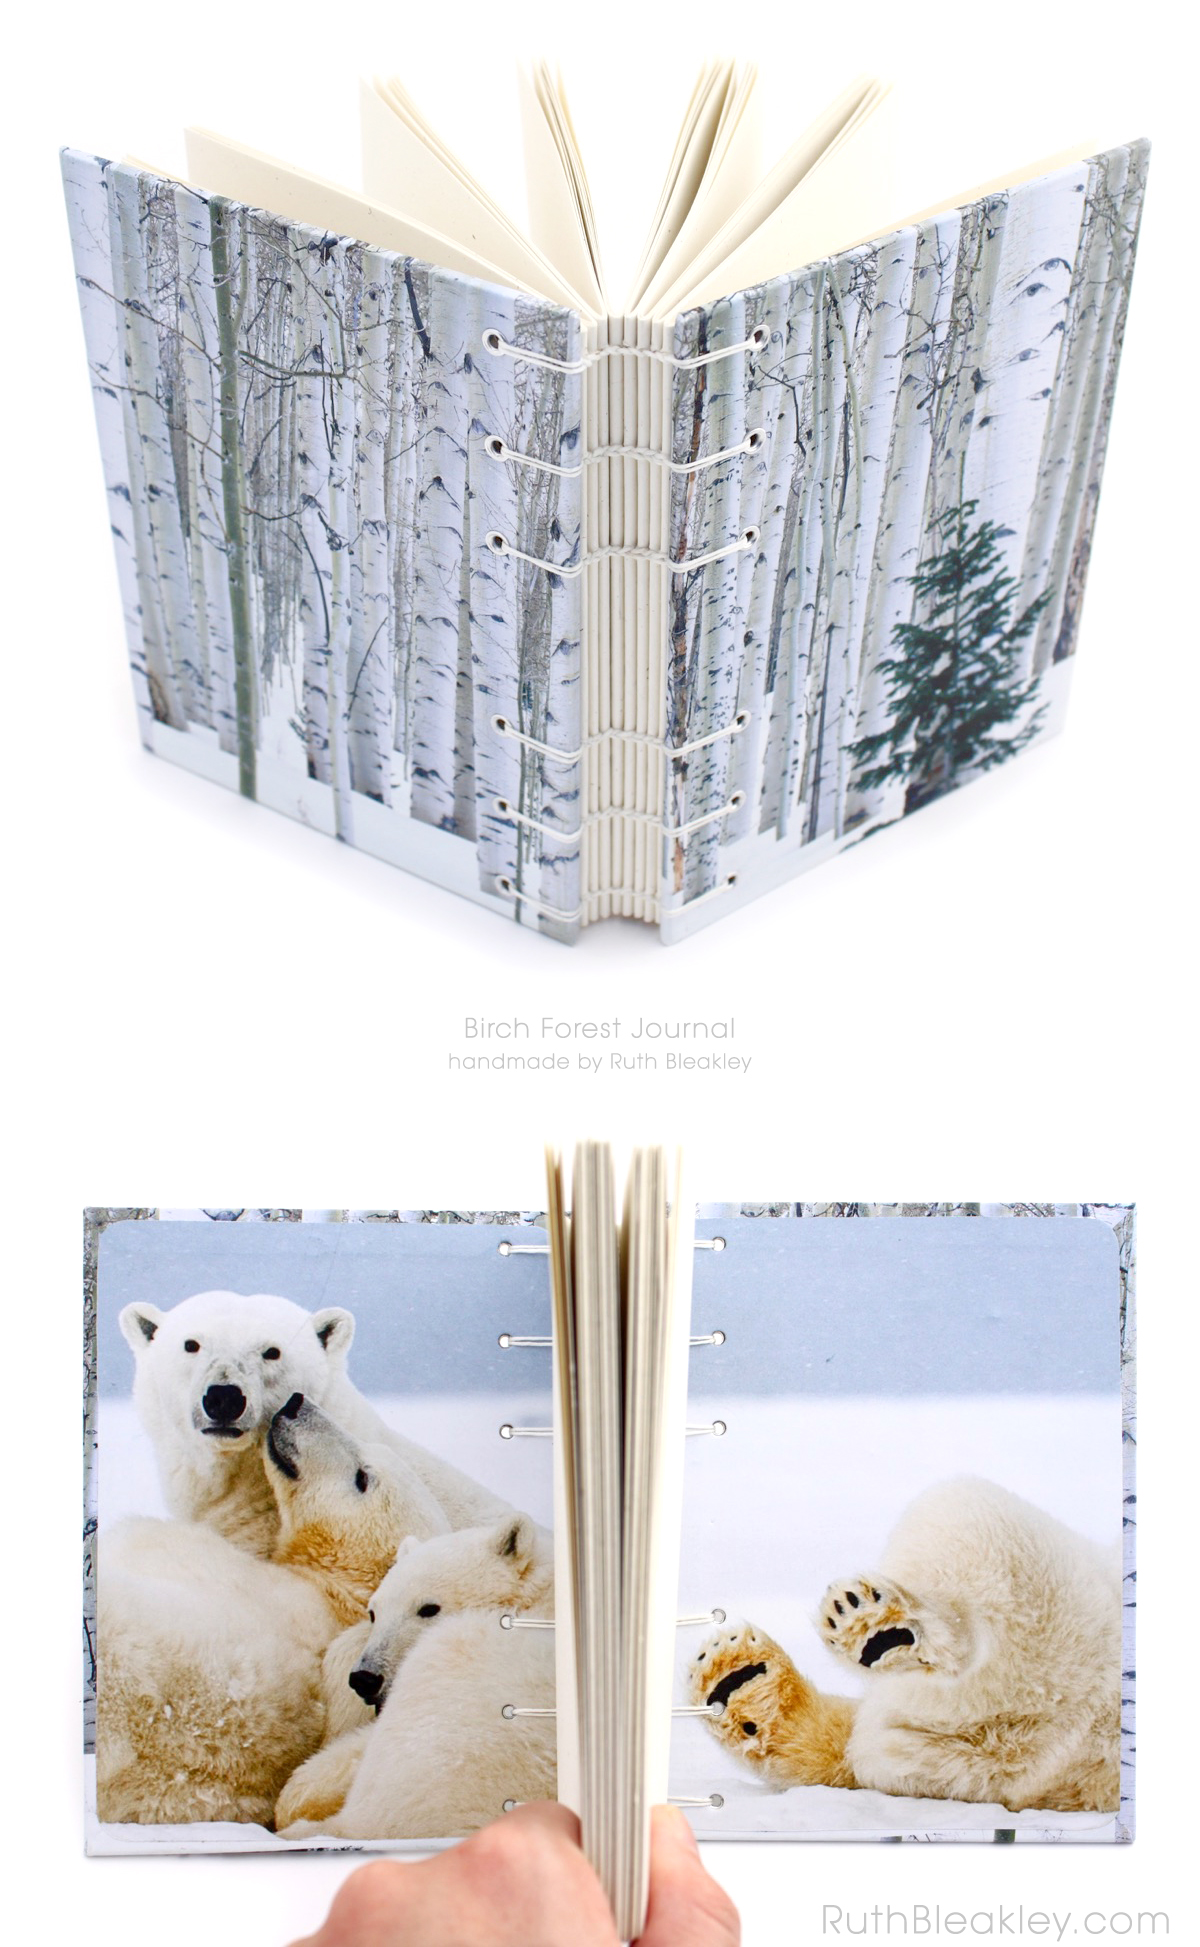 Birch Forest Journal handmade by bookbinder Ruth Bleakley